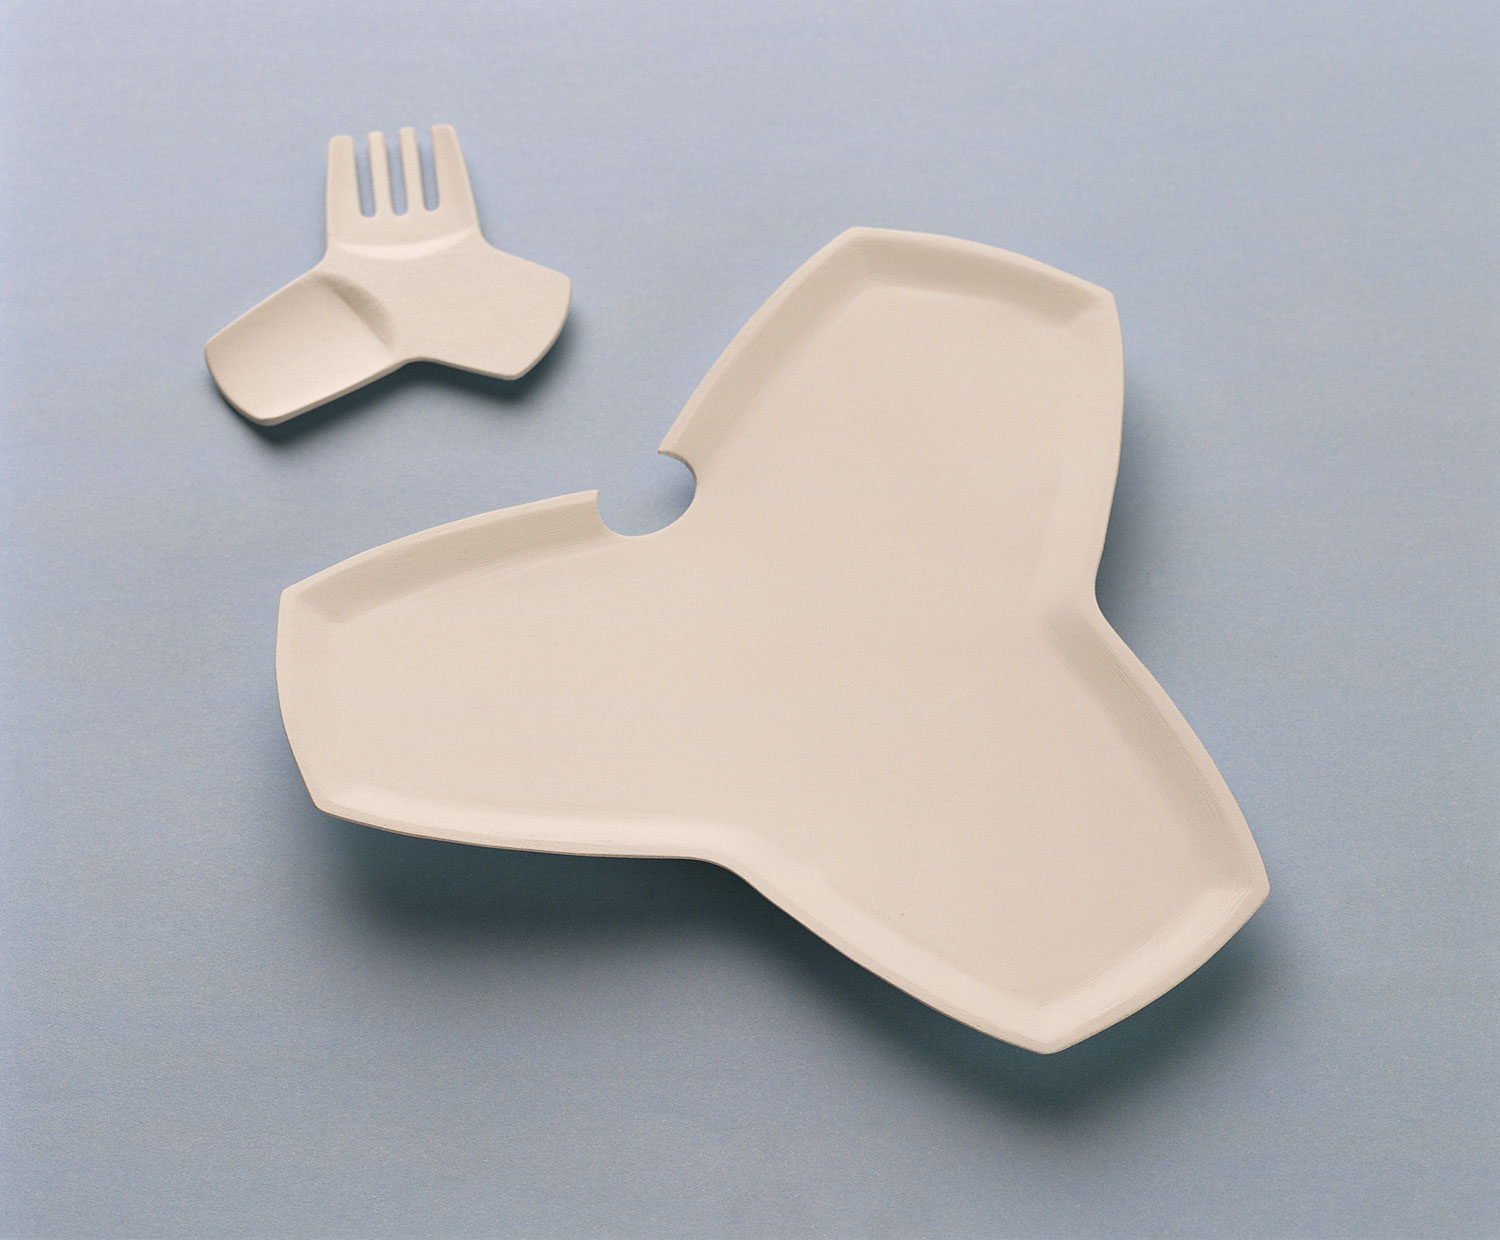 Catering Plate and Cutlery